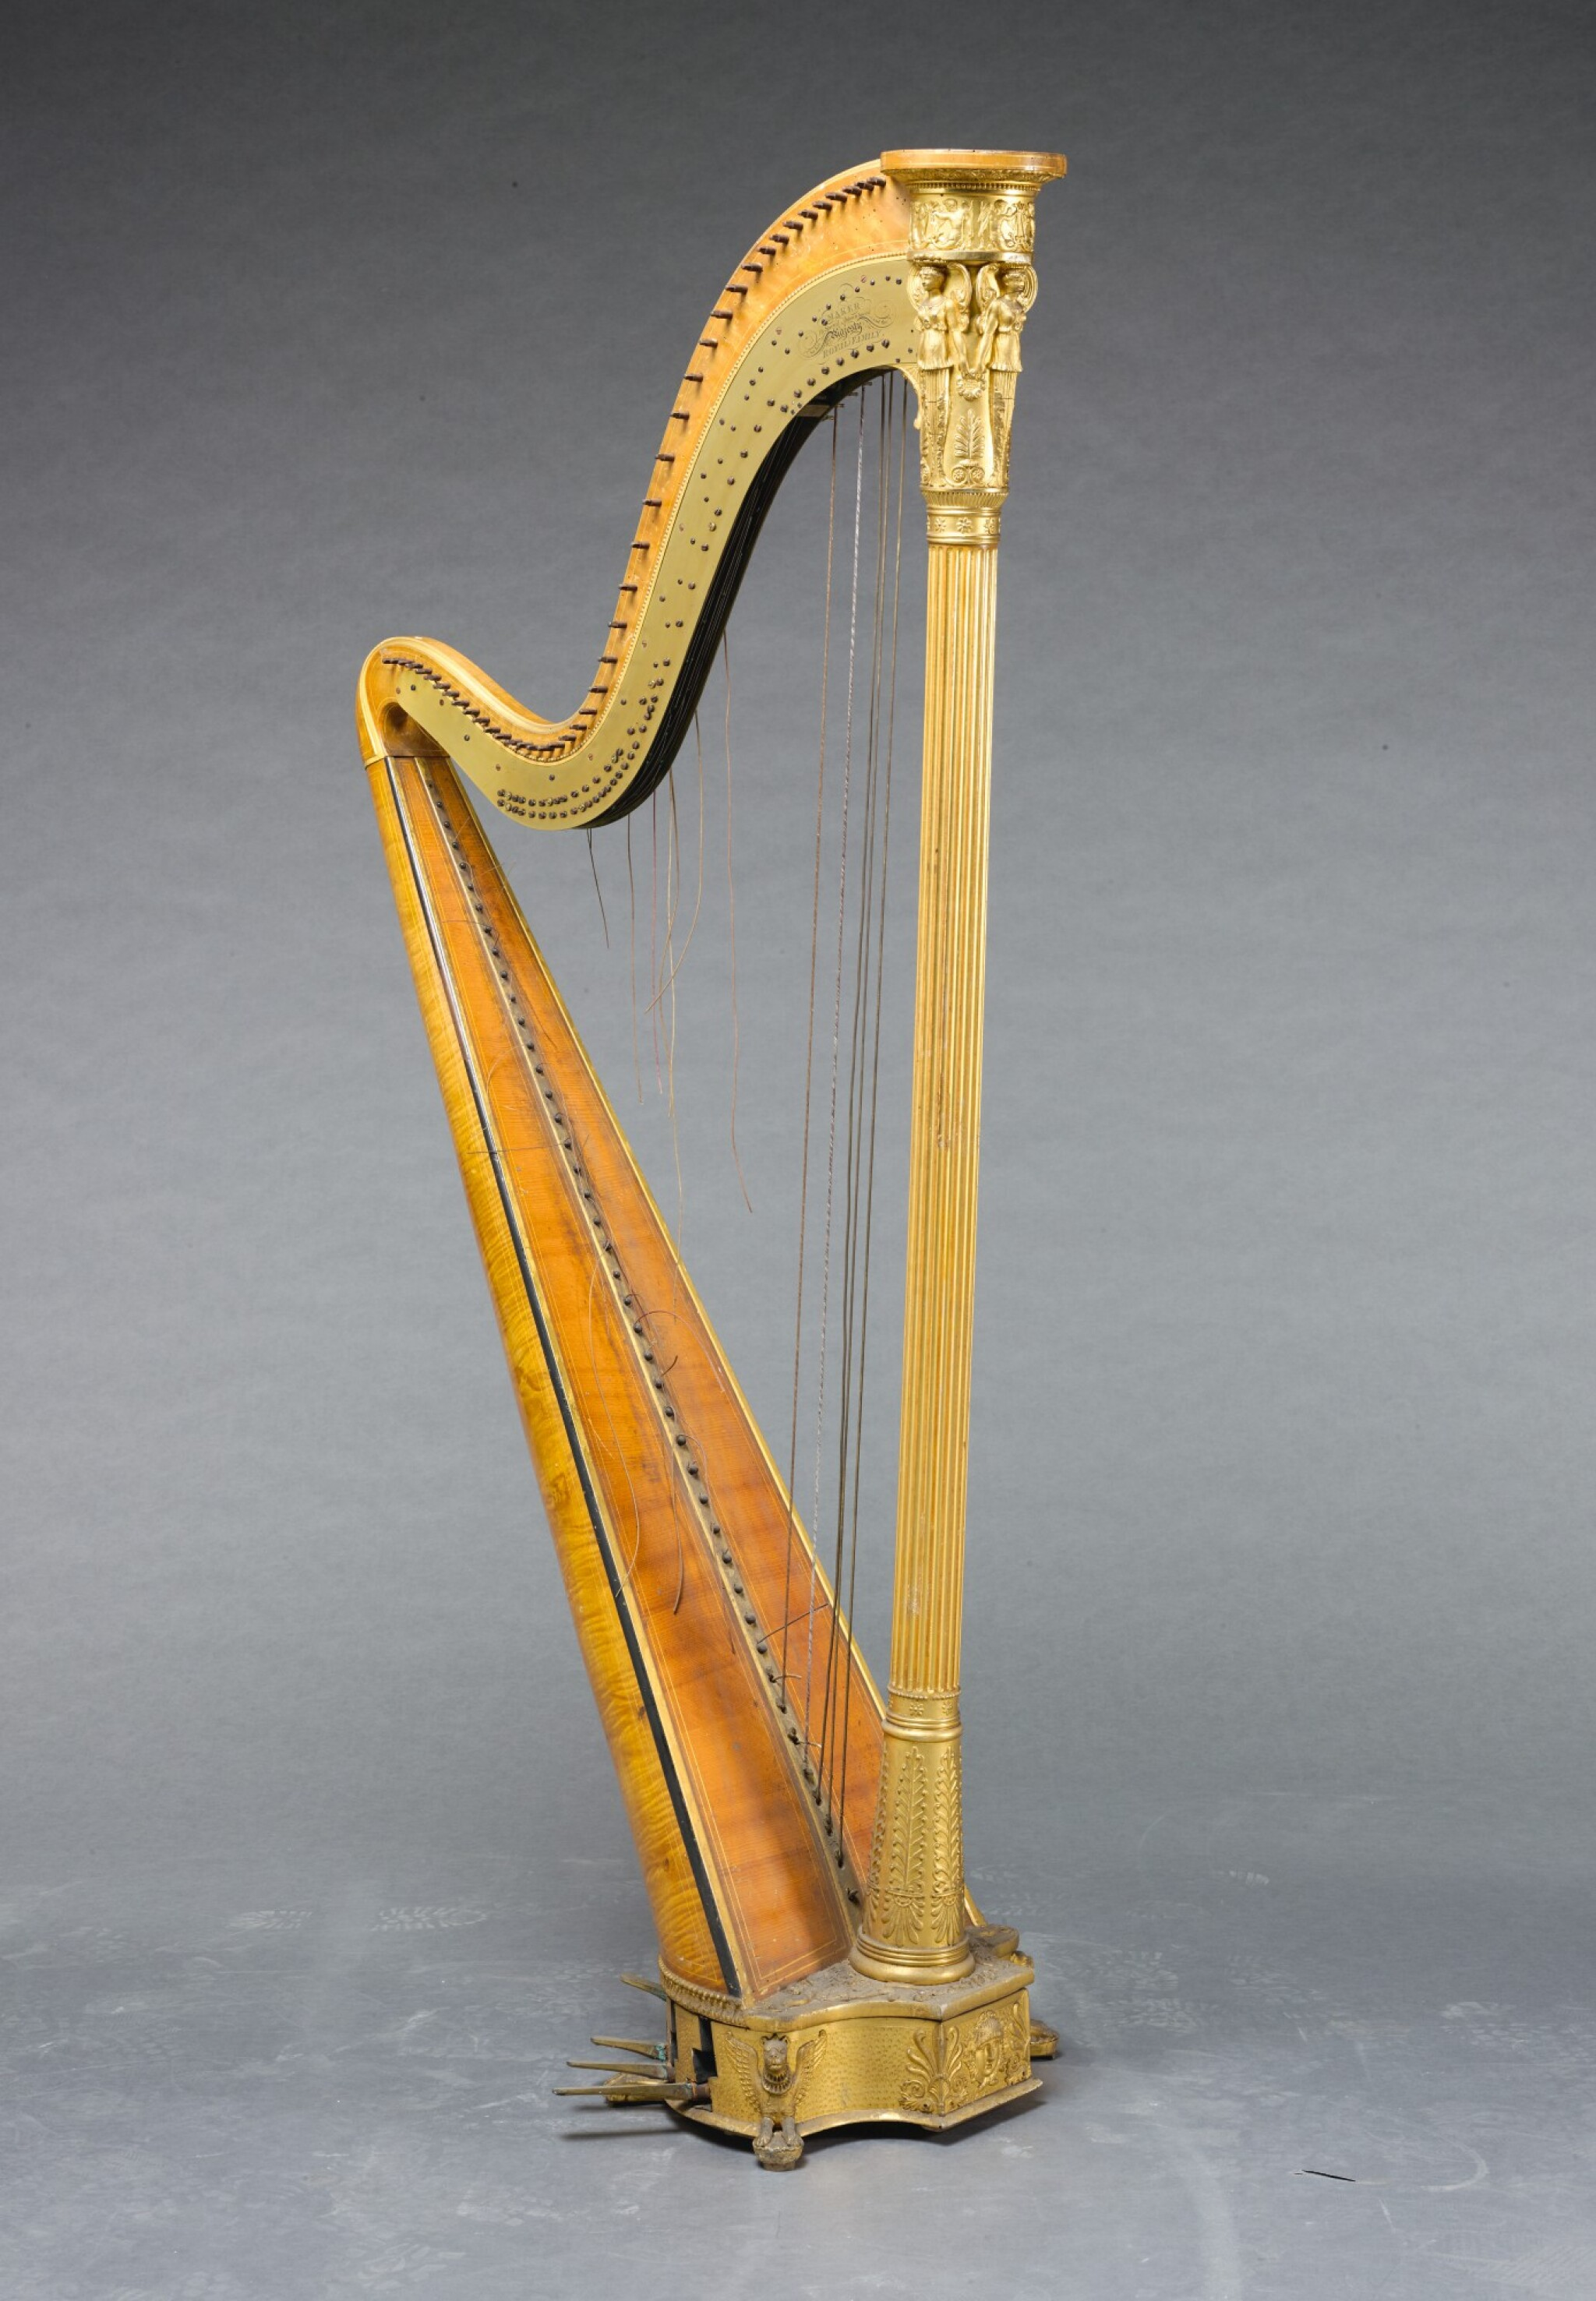 View full screen - View 1 of Lot 239. A GEORGE IV GILTWOOD AND SATINBIRCH DOUBLE-ACTION PEDAL HARP BY SEBASTIAN ERARD, LONDON, NOVEMBER 1821.